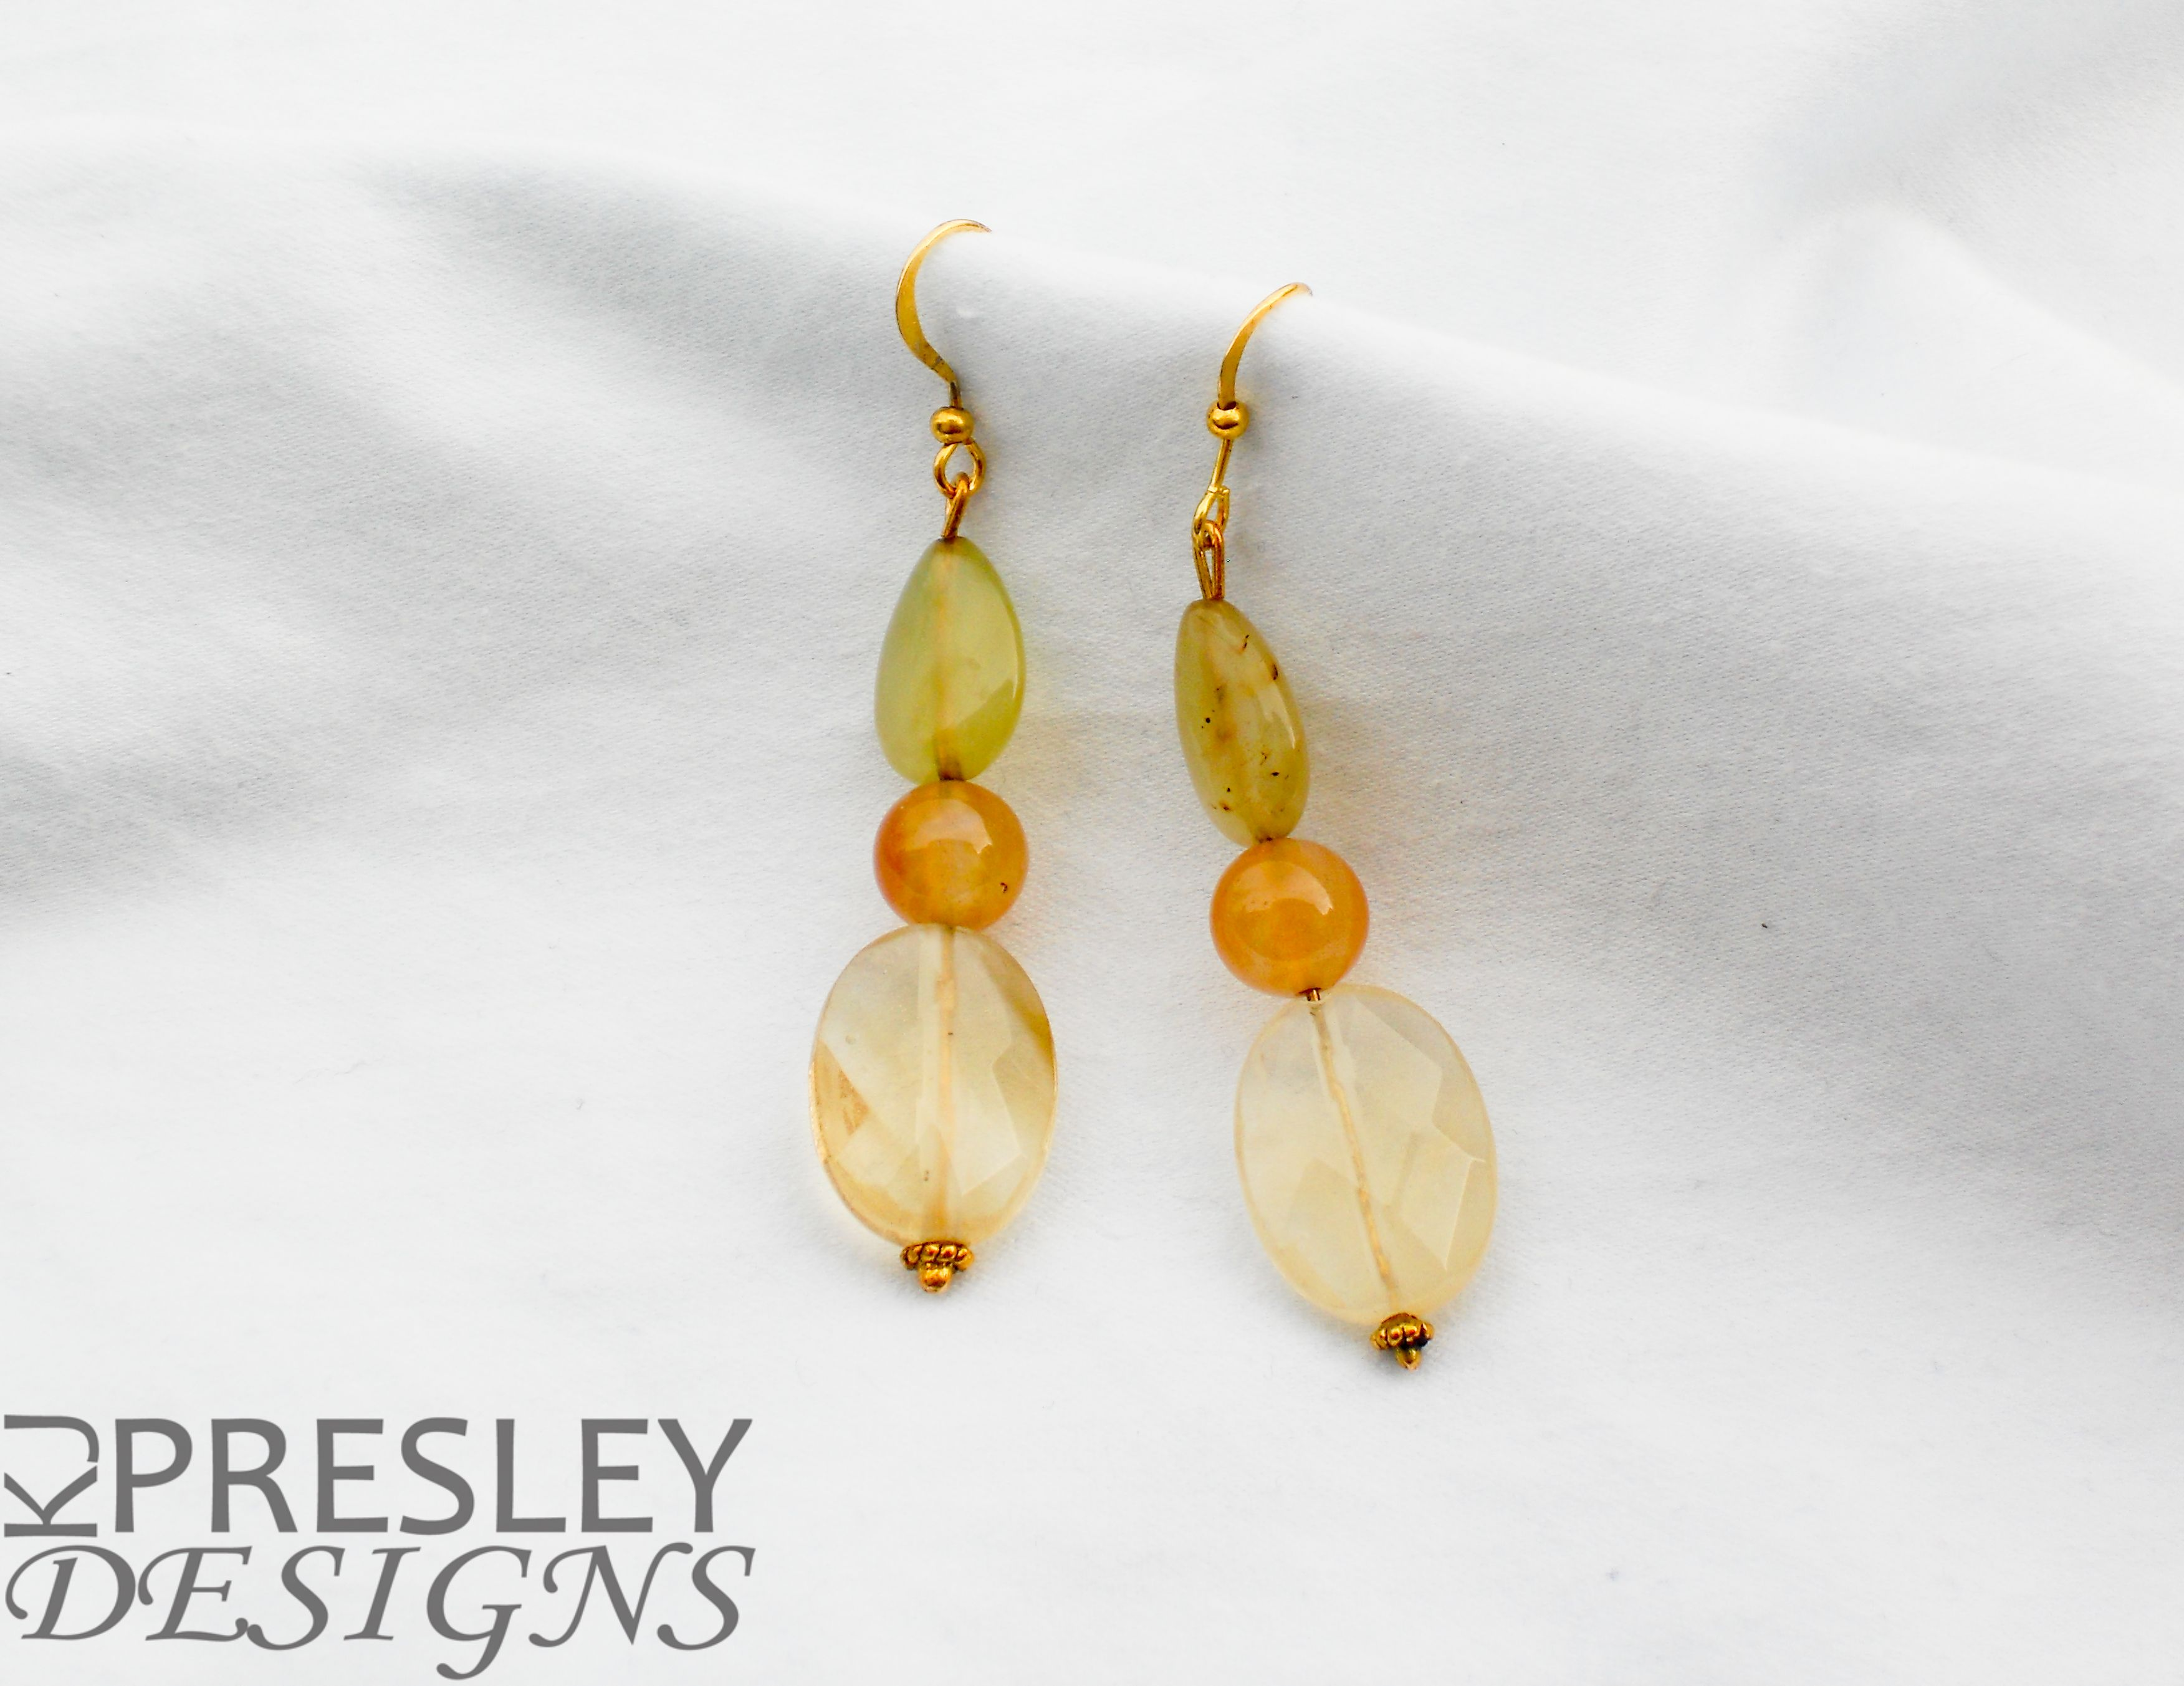 Agate, Jade. & Cherry Quartz Earrings by KJPresley Designs  http://www.kjpresleydesigns.com/ #jewelry #earrings #discontinued #sale @KJPresleyDesgns